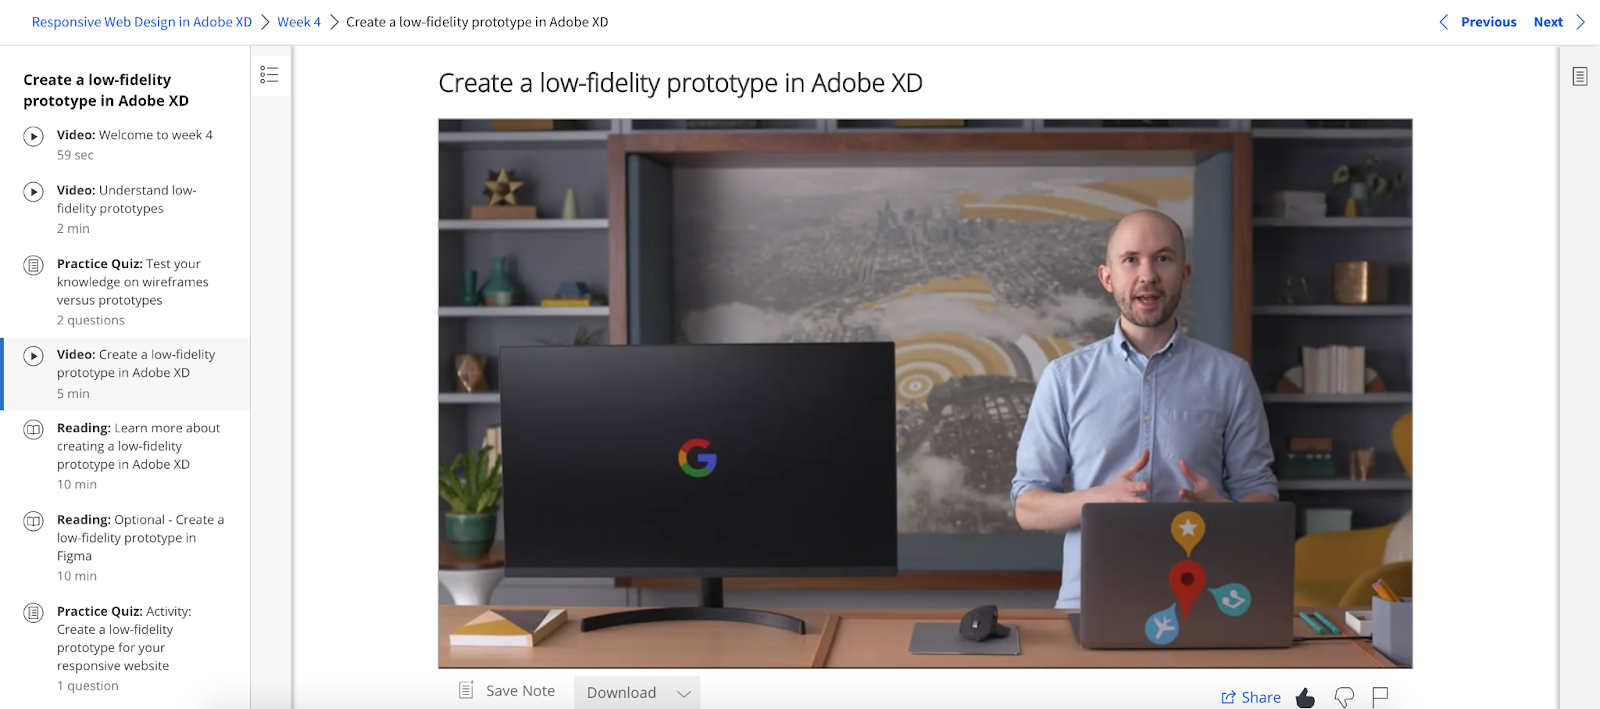 A screenshot from the Google UX Design Certificate course covering how to create low-fidelity prototypes in Adobe XD.